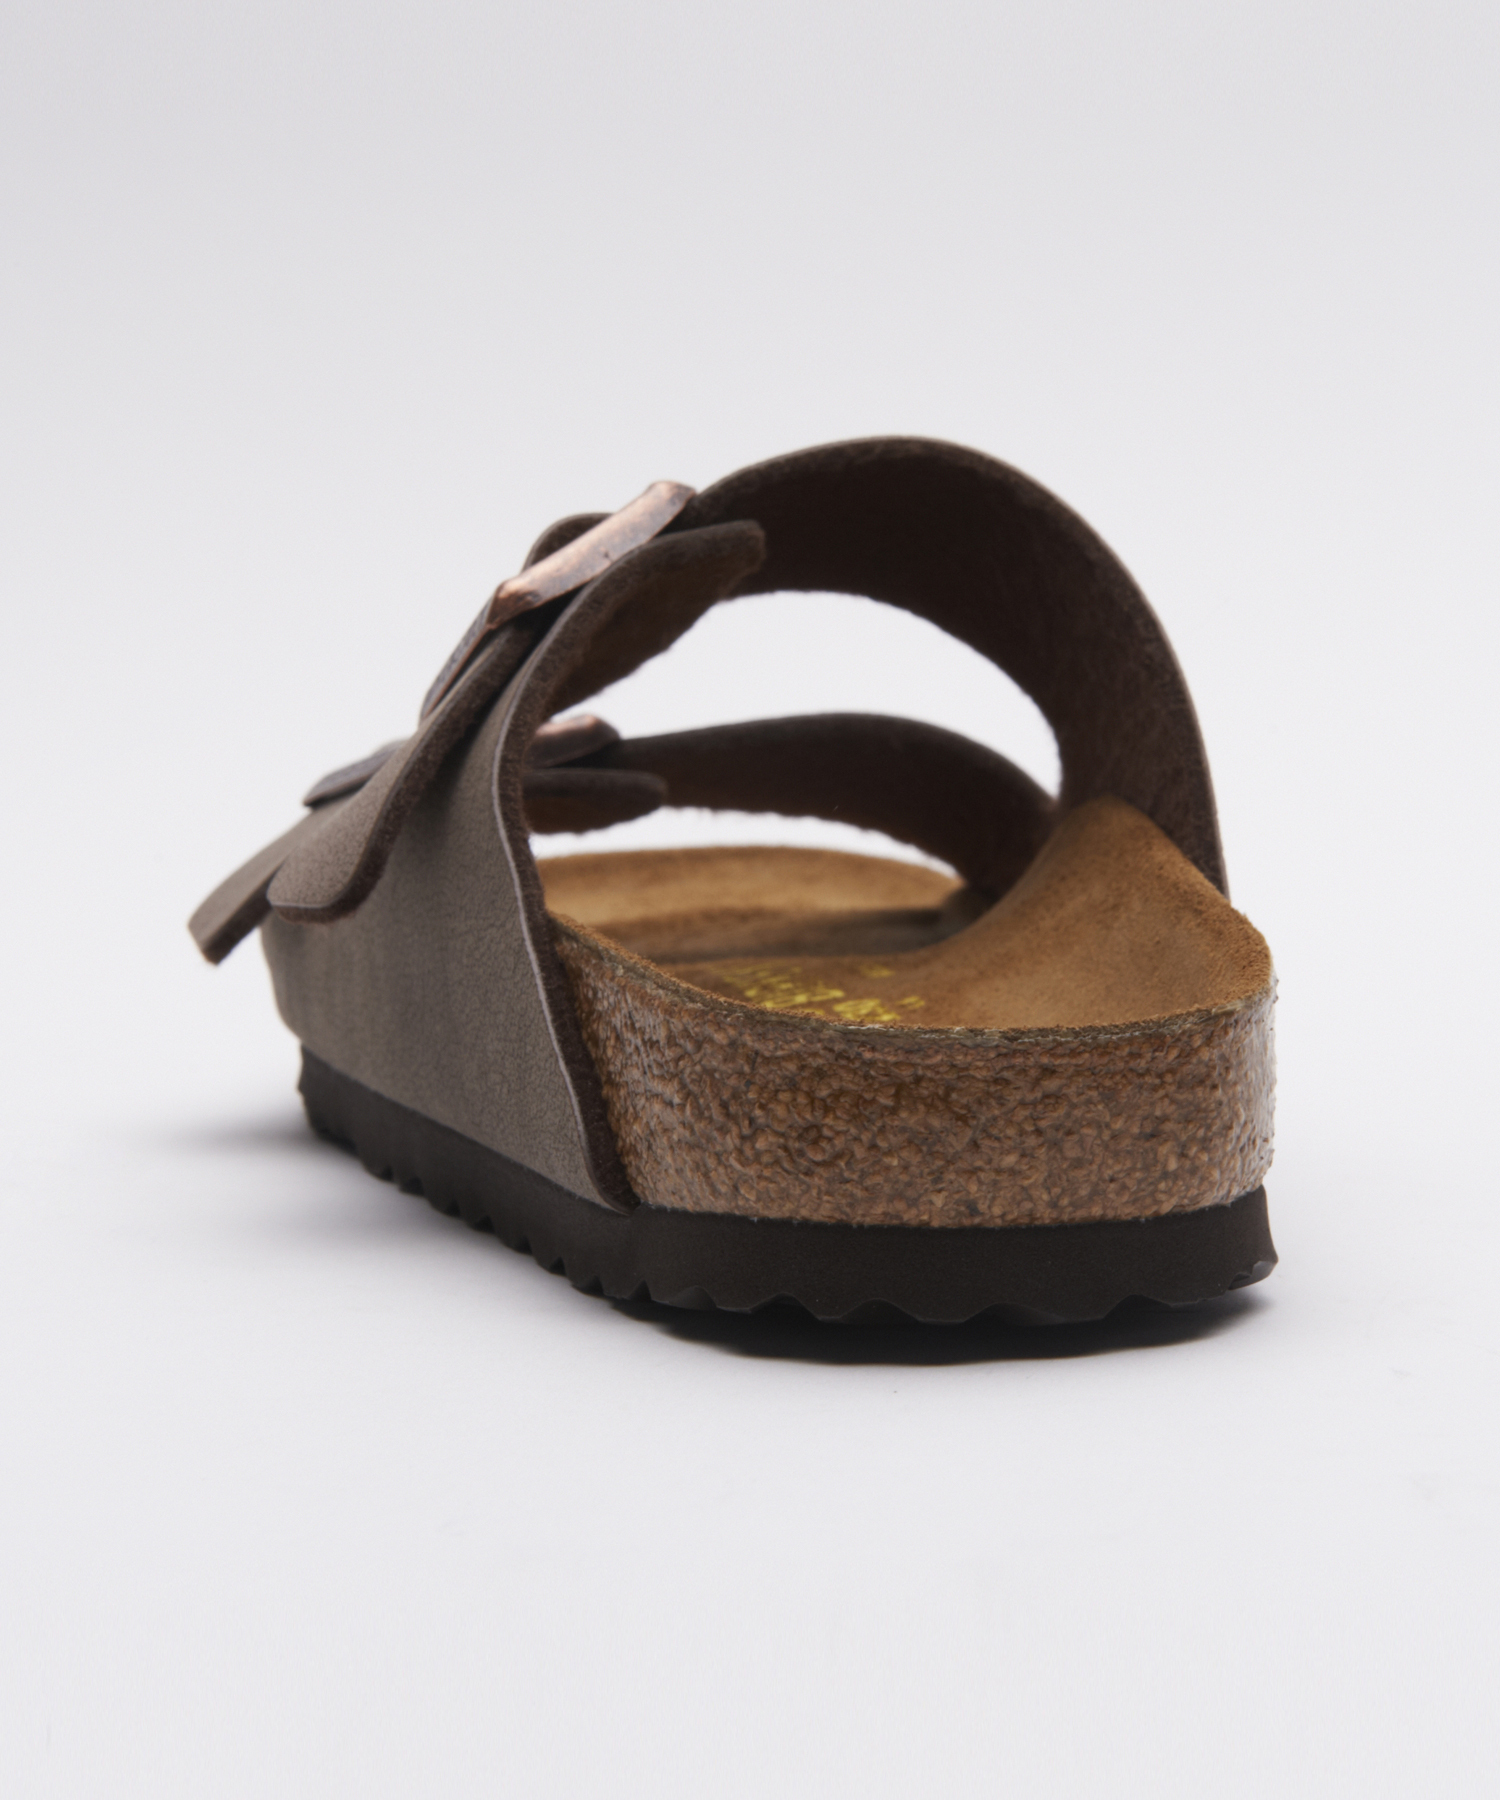 shop birkenstock shoes